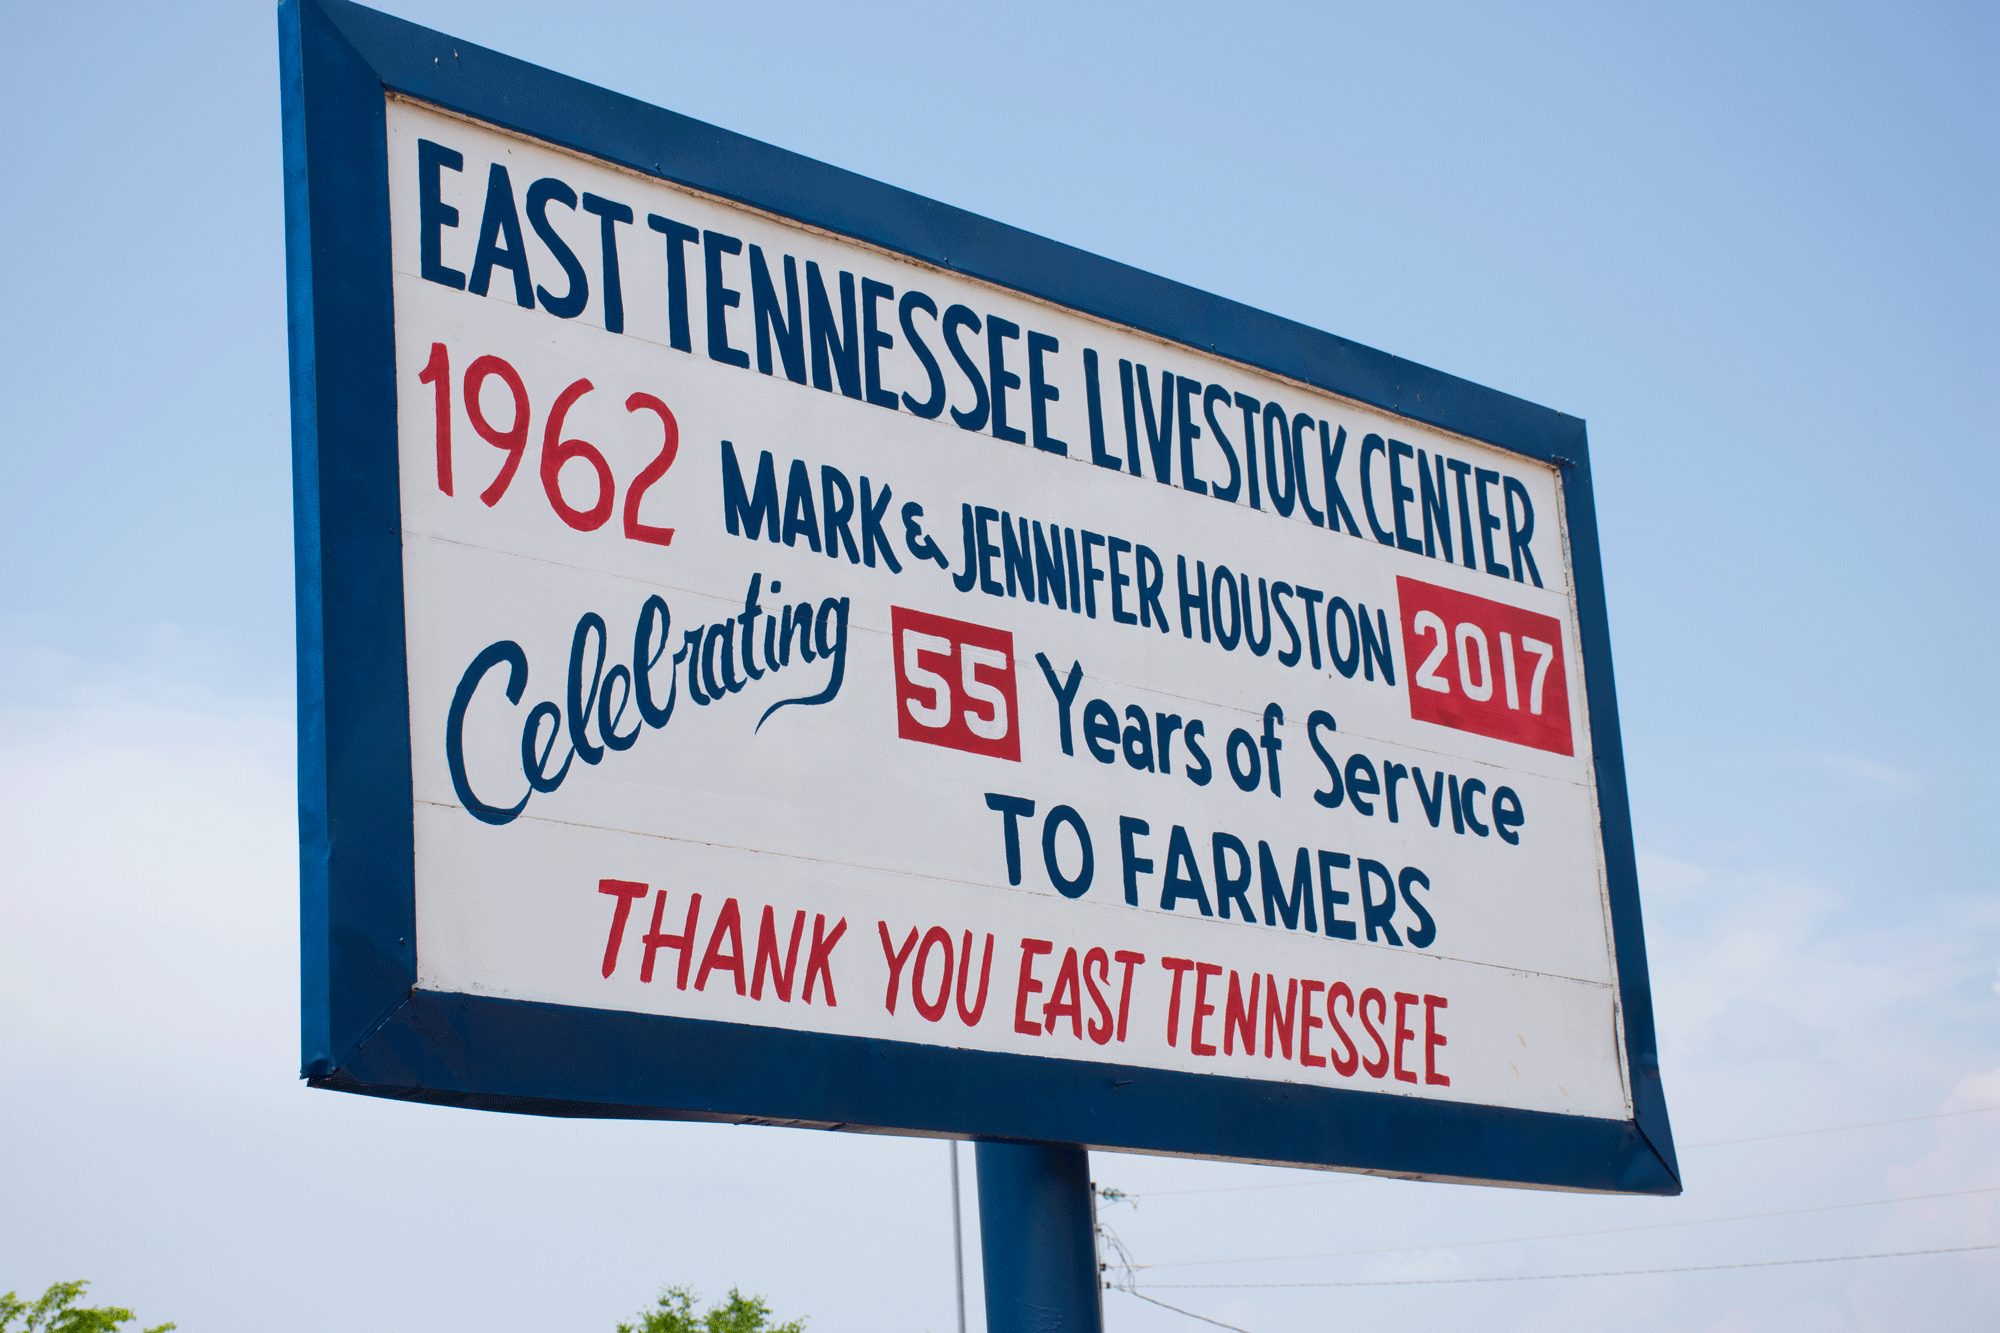 East Tennessee Livestock Center